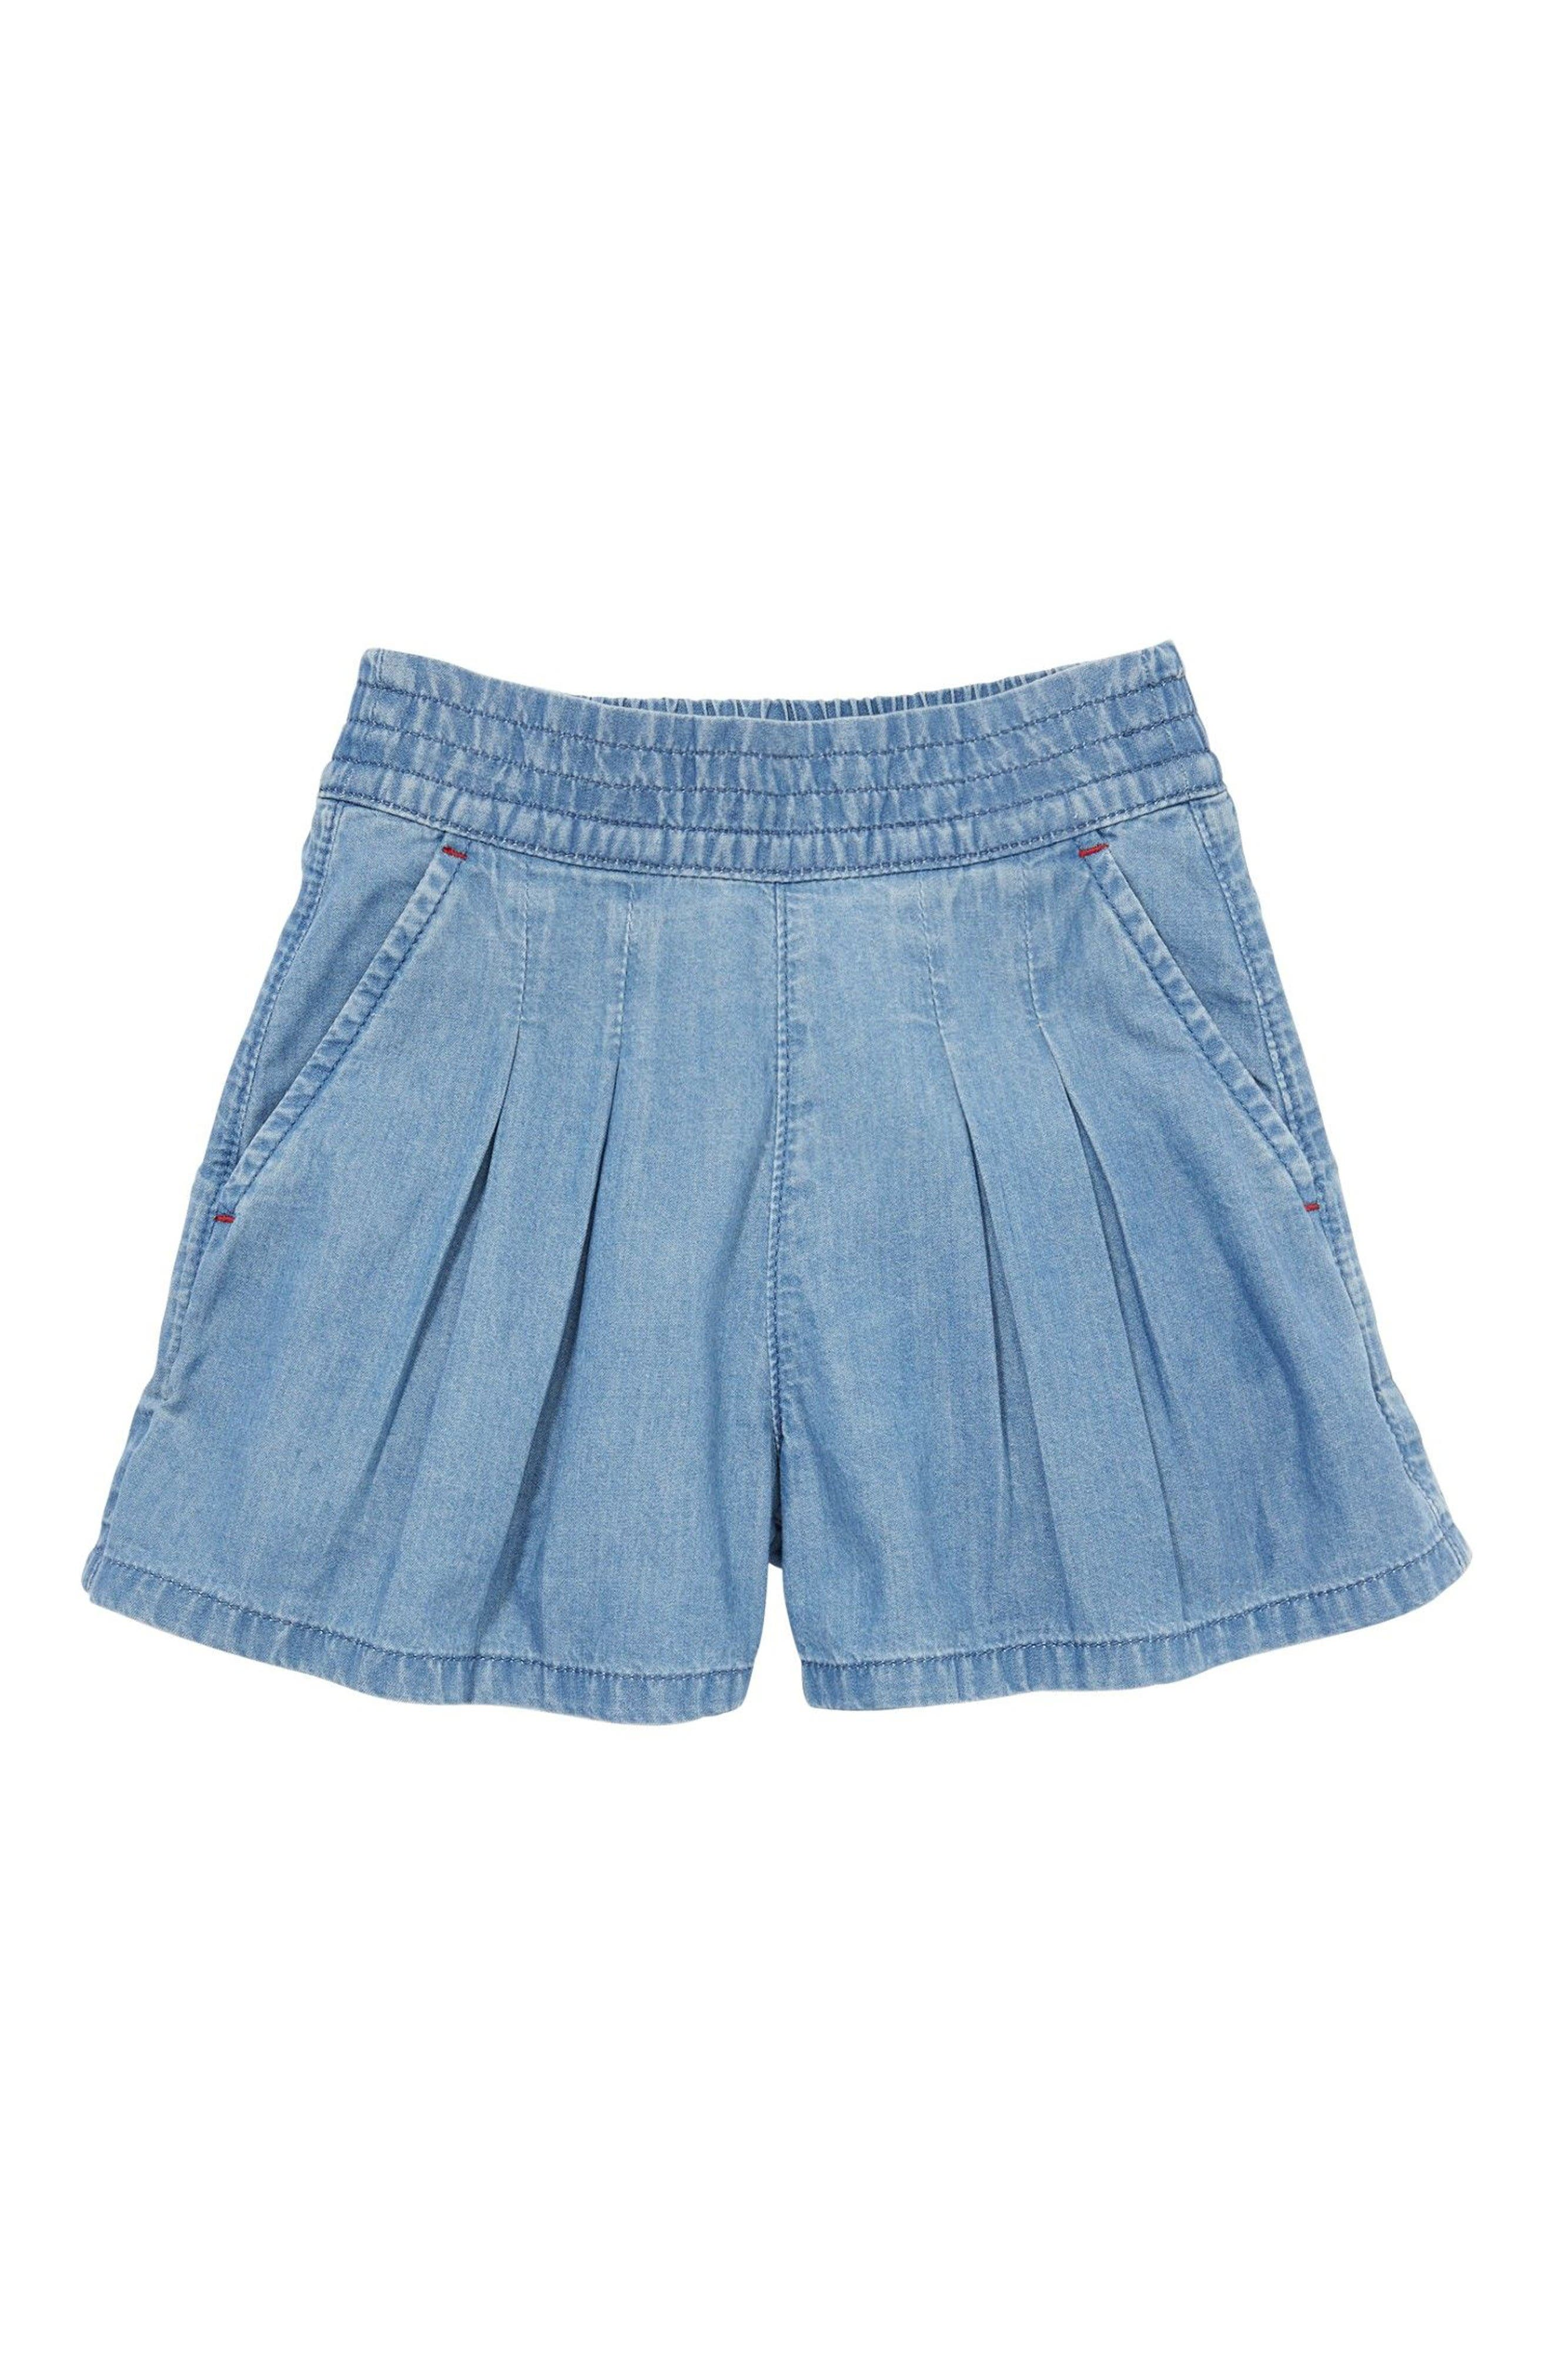 Mini Boden Pull-On Denim Shorts (Toddler Girls, Little Girls & Big Girls)